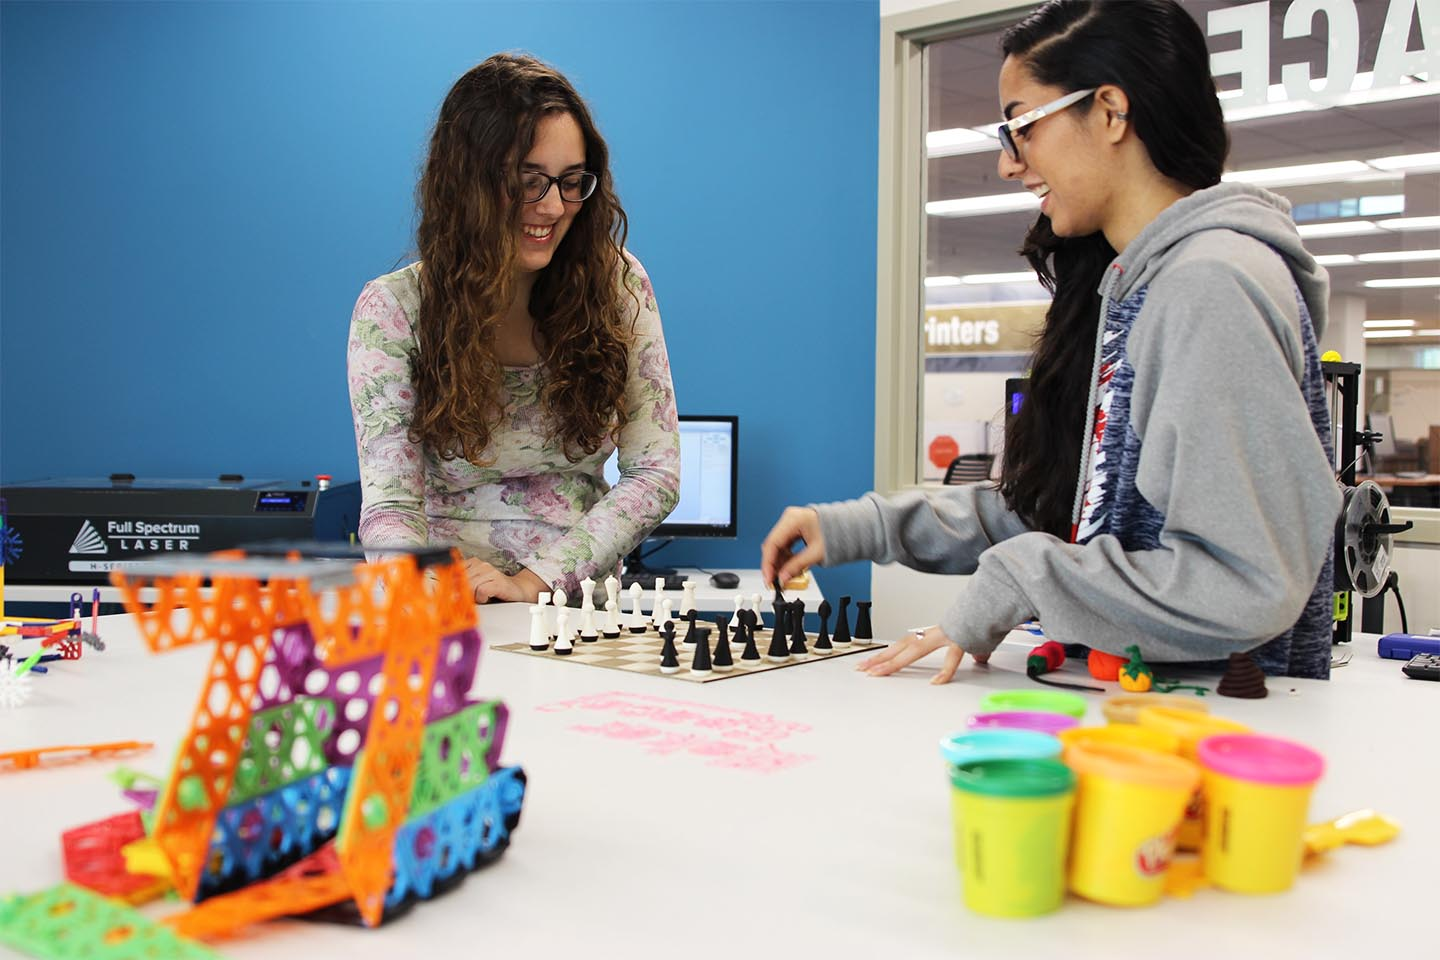 OU's Kresge Library opens makerspace to inspire student collaboration, creativity